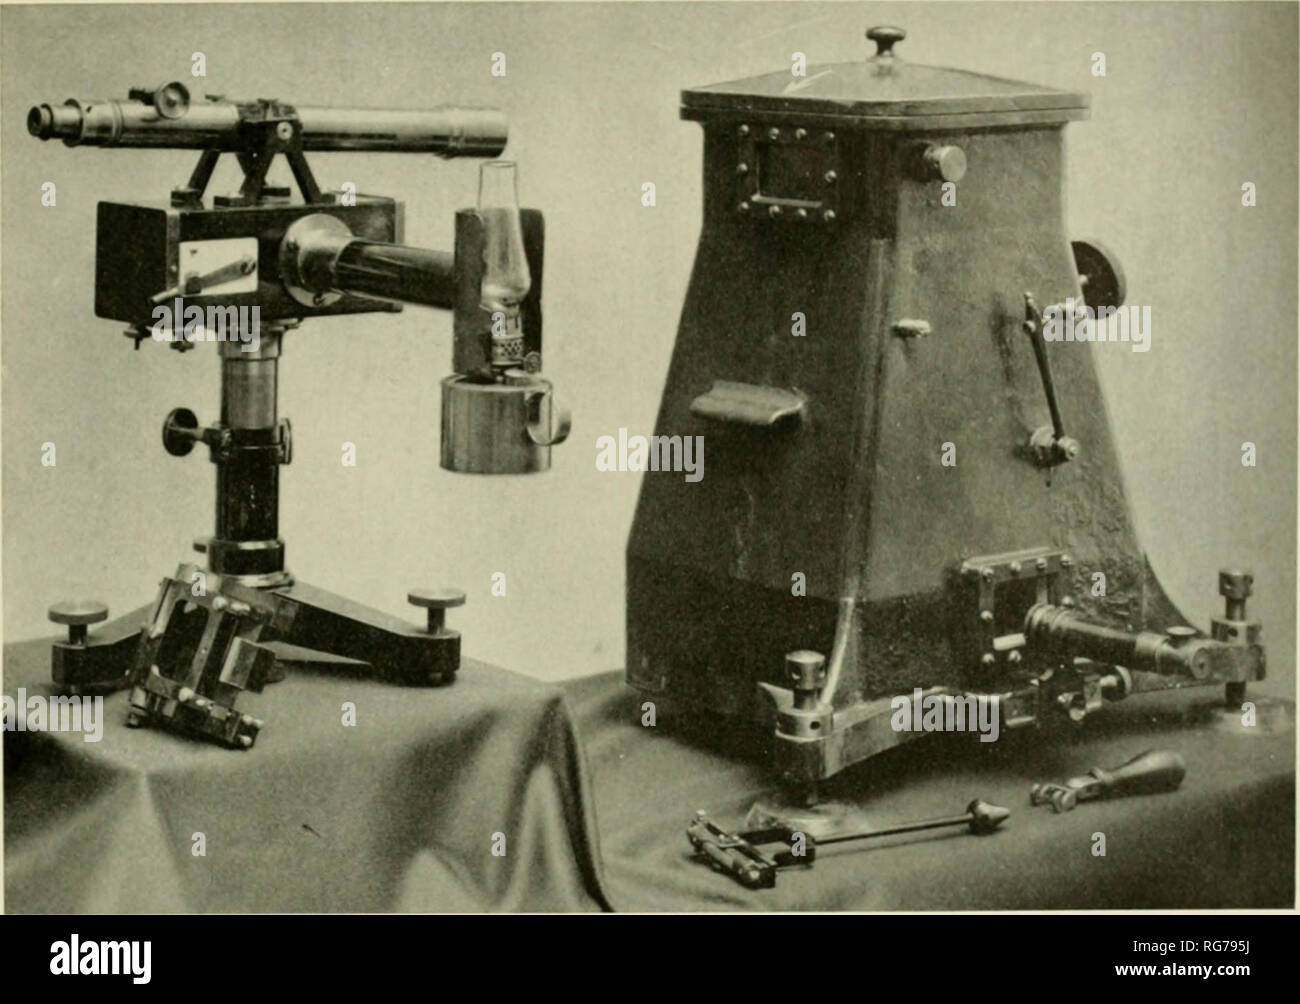 . Bulletin - United States National Museum. Science. Figure 25 Mendenhall's 'i-n iter i'j-second) apparatus. Shown on the left is the flash apparatus and, on the right, the vacuum chamber within which the pendulum is swung. 1 he flash apparatus consists of a kerosene lantern and a telescope, mounted on a box containing an electromagnetically operated shutter. 1 he operation of the shutter is con- trolled by a chronograph (not shown), so that ii emits a slit of light at regular intervals. 1 he nil-scope is focused on two mirrors within the apparatus, one fixed, the other attached to the top of - Stock Image